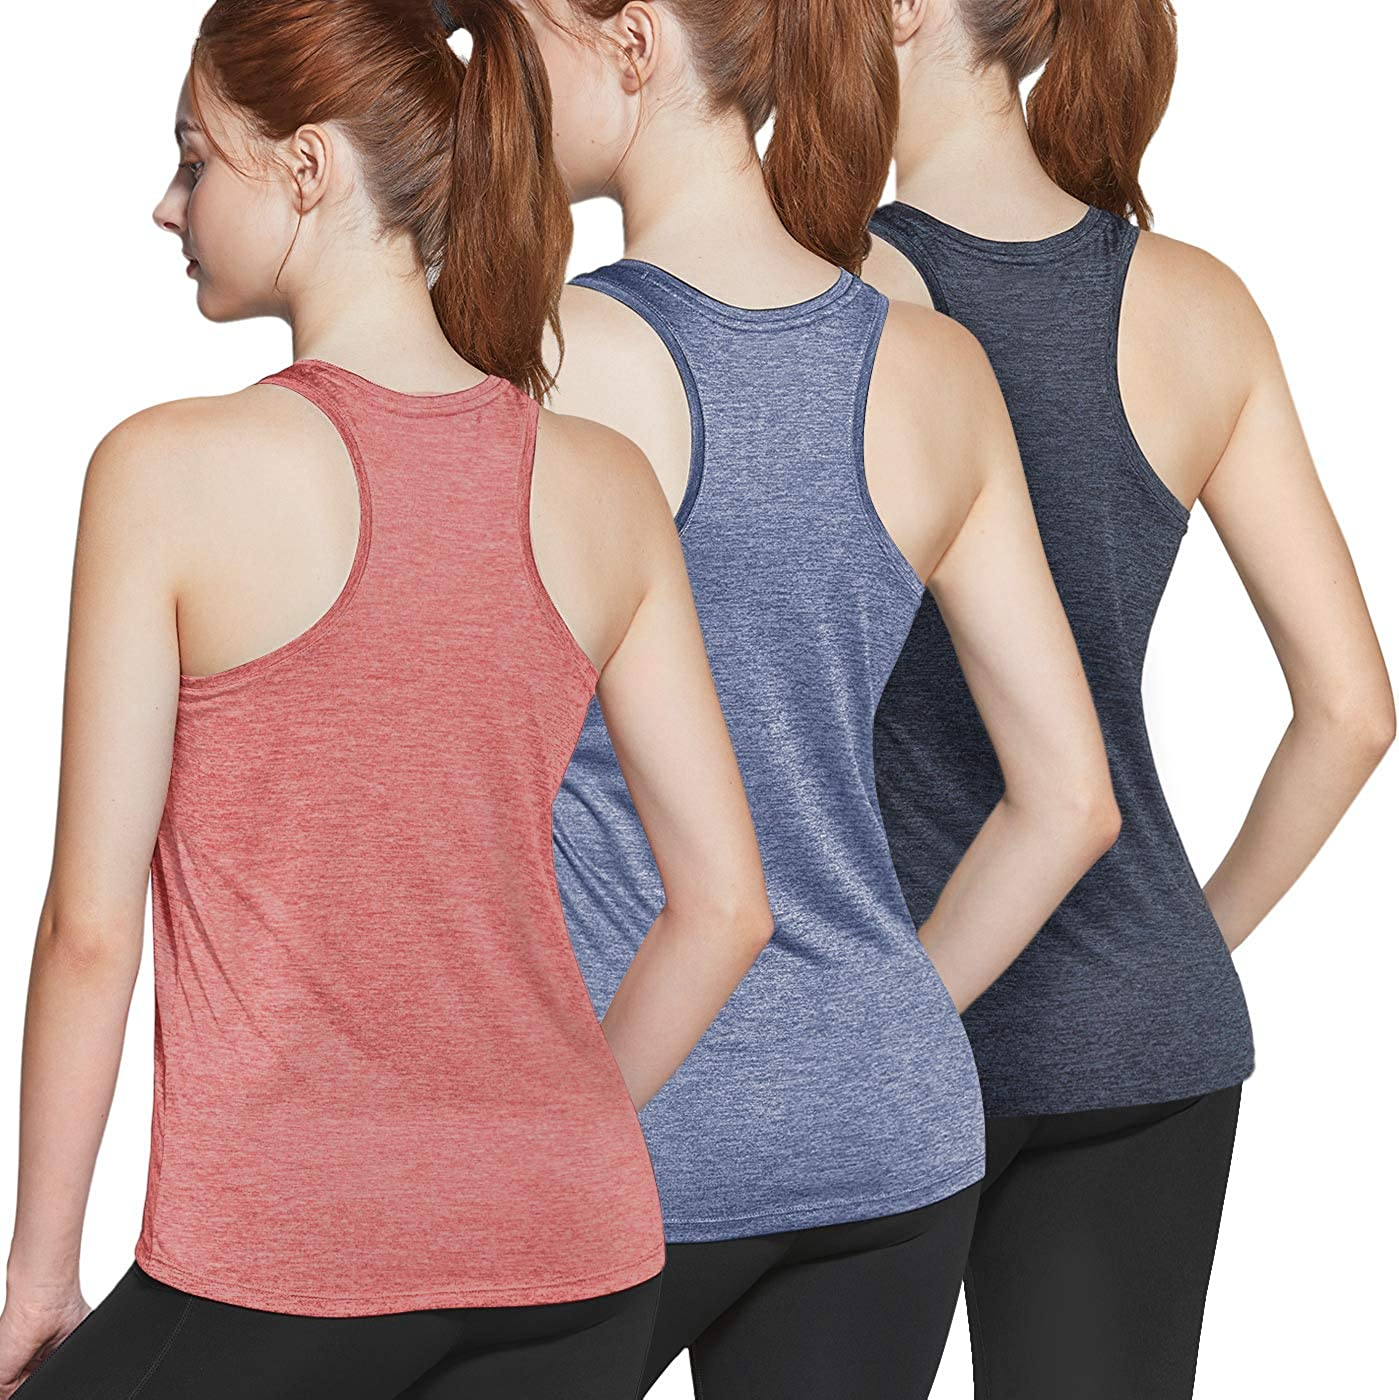 Dry Fit Yoga Athletic Tank Top Running Exercise Gym Shirts ATHLIO 3 Pack Womens Racerback Workout Tank Tops